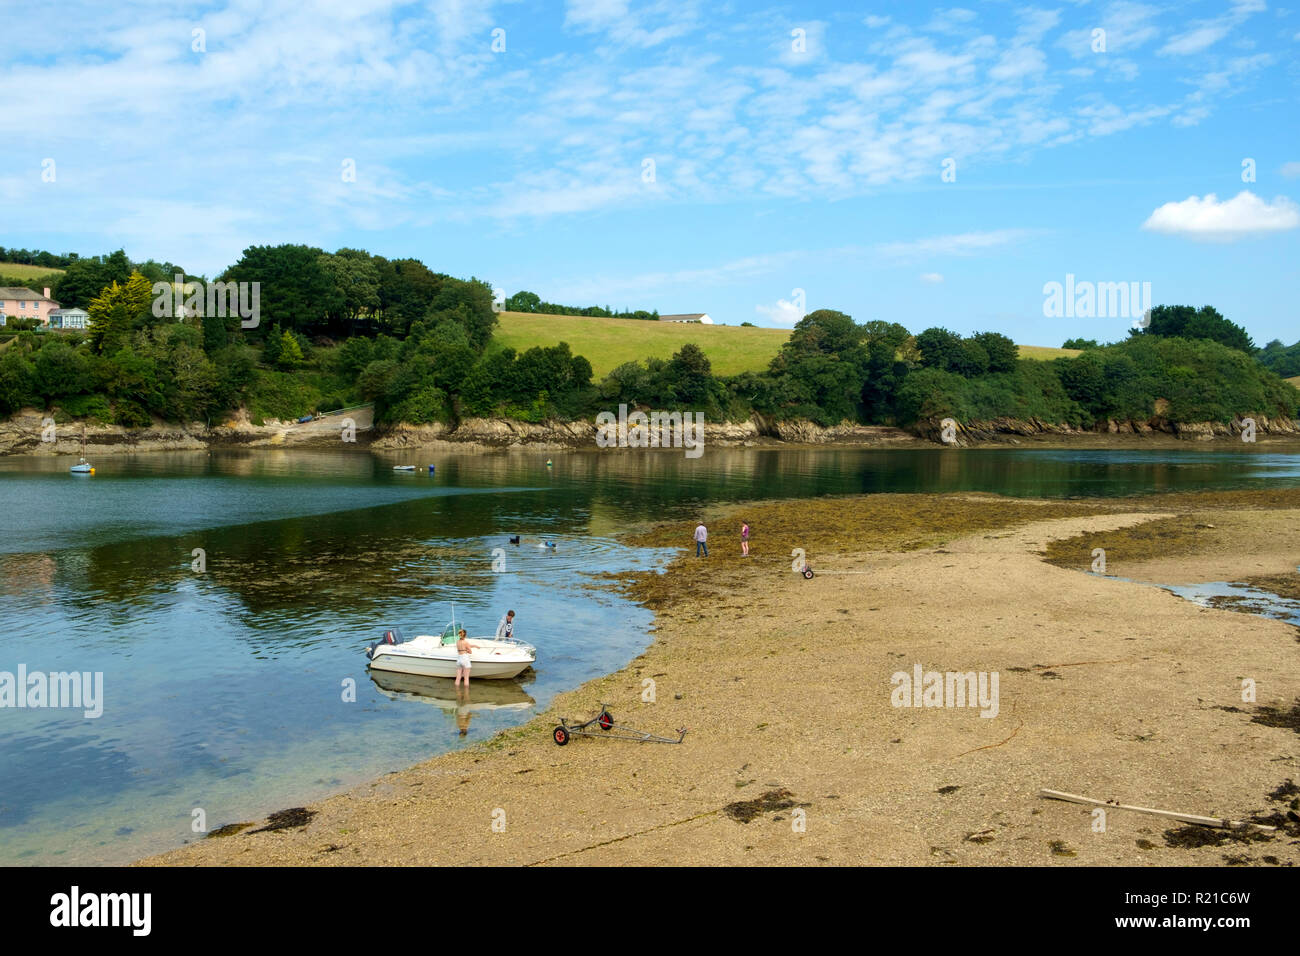 St Just in Roseland, UK - 25th July 2017: A calm summer morning brings people out to exercise their dogs by the creek at St Just in Roseland on the picturesque Roseland Peninsula in Cornwall, UK Stock Photo